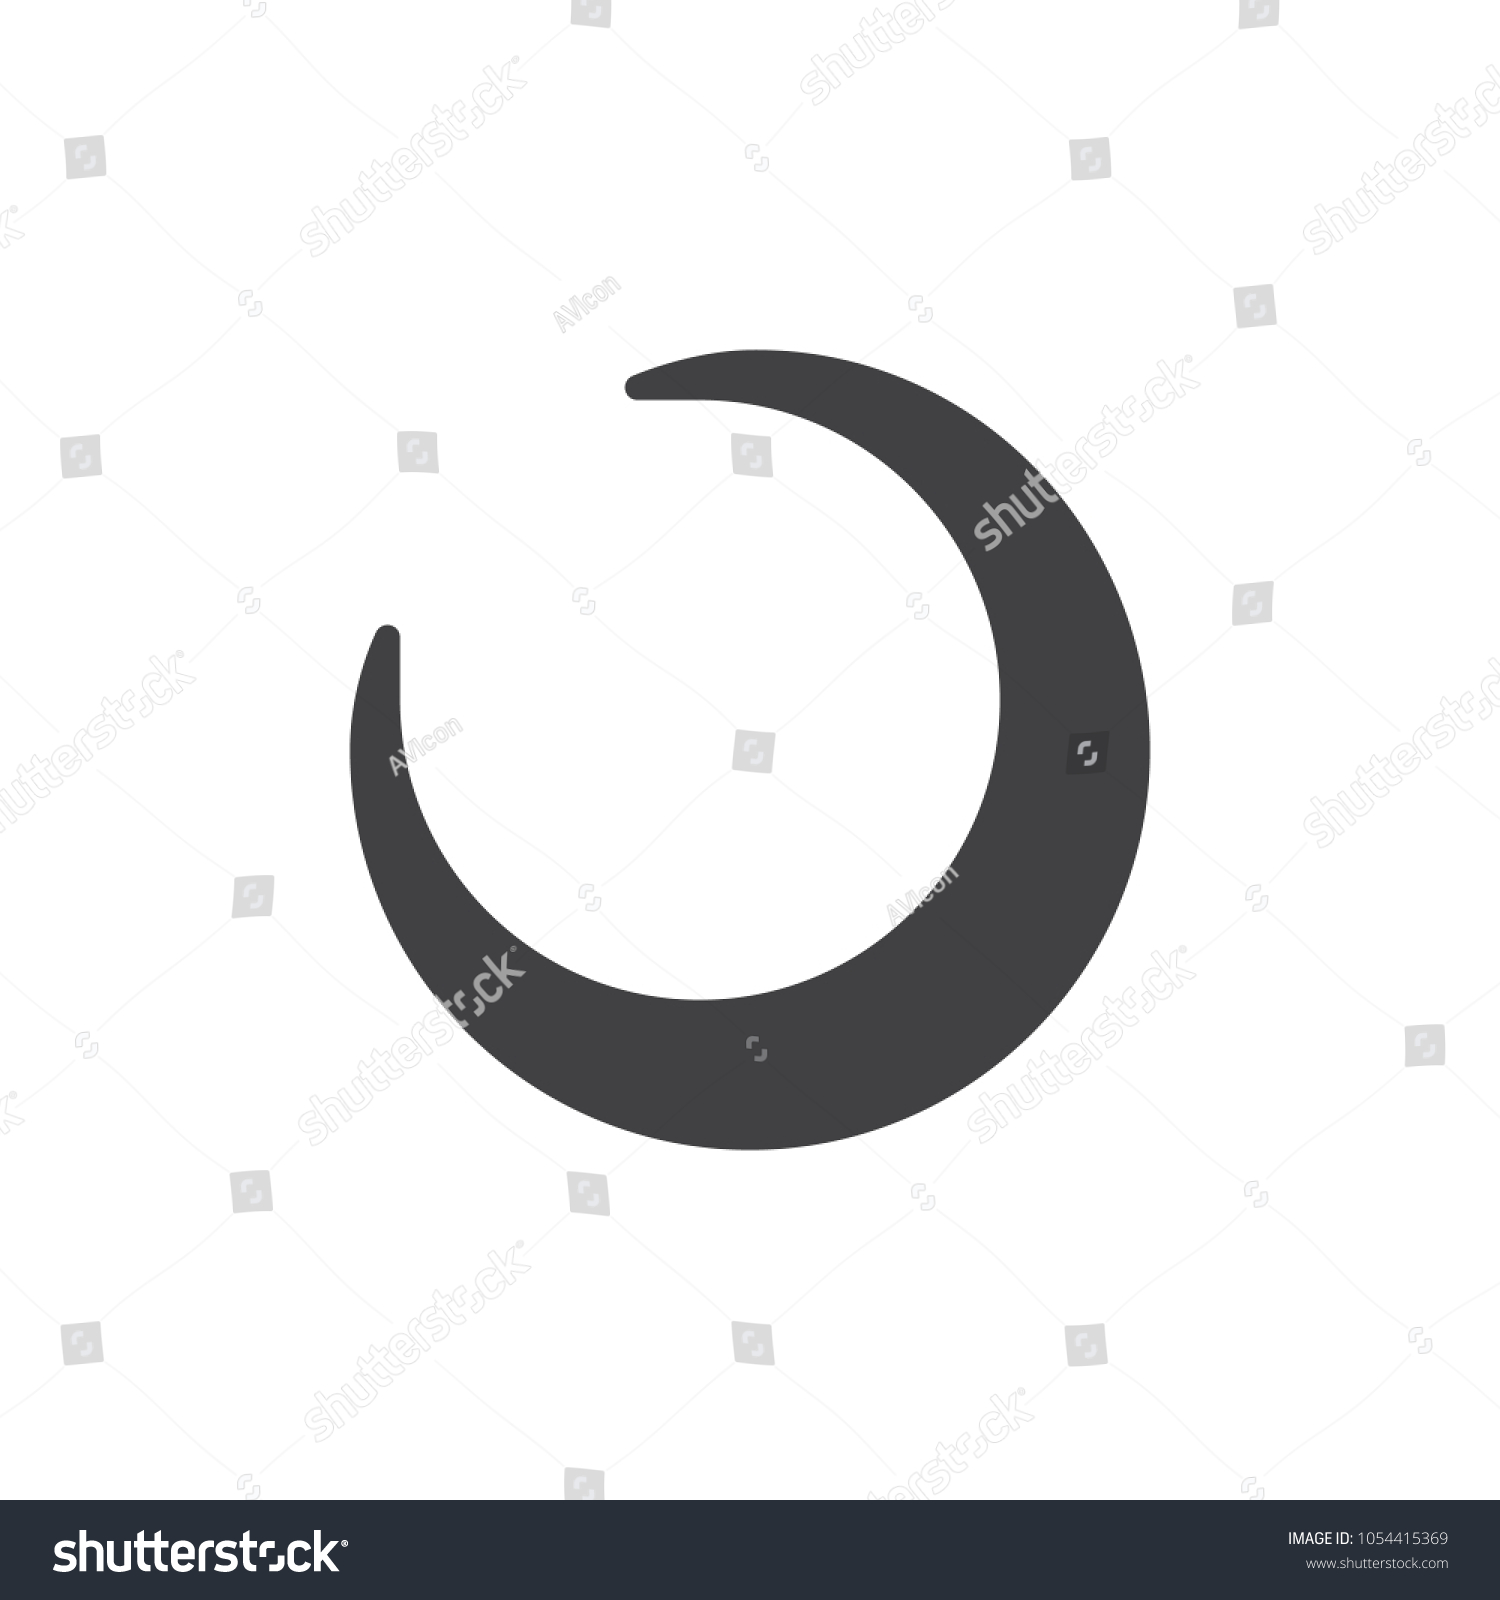 Crescent moon icon vector filled flat stock vector 1054415369 crescent moon icon vector filled flat sign solid pictogram isolated on white astrology buycottarizona Image collections